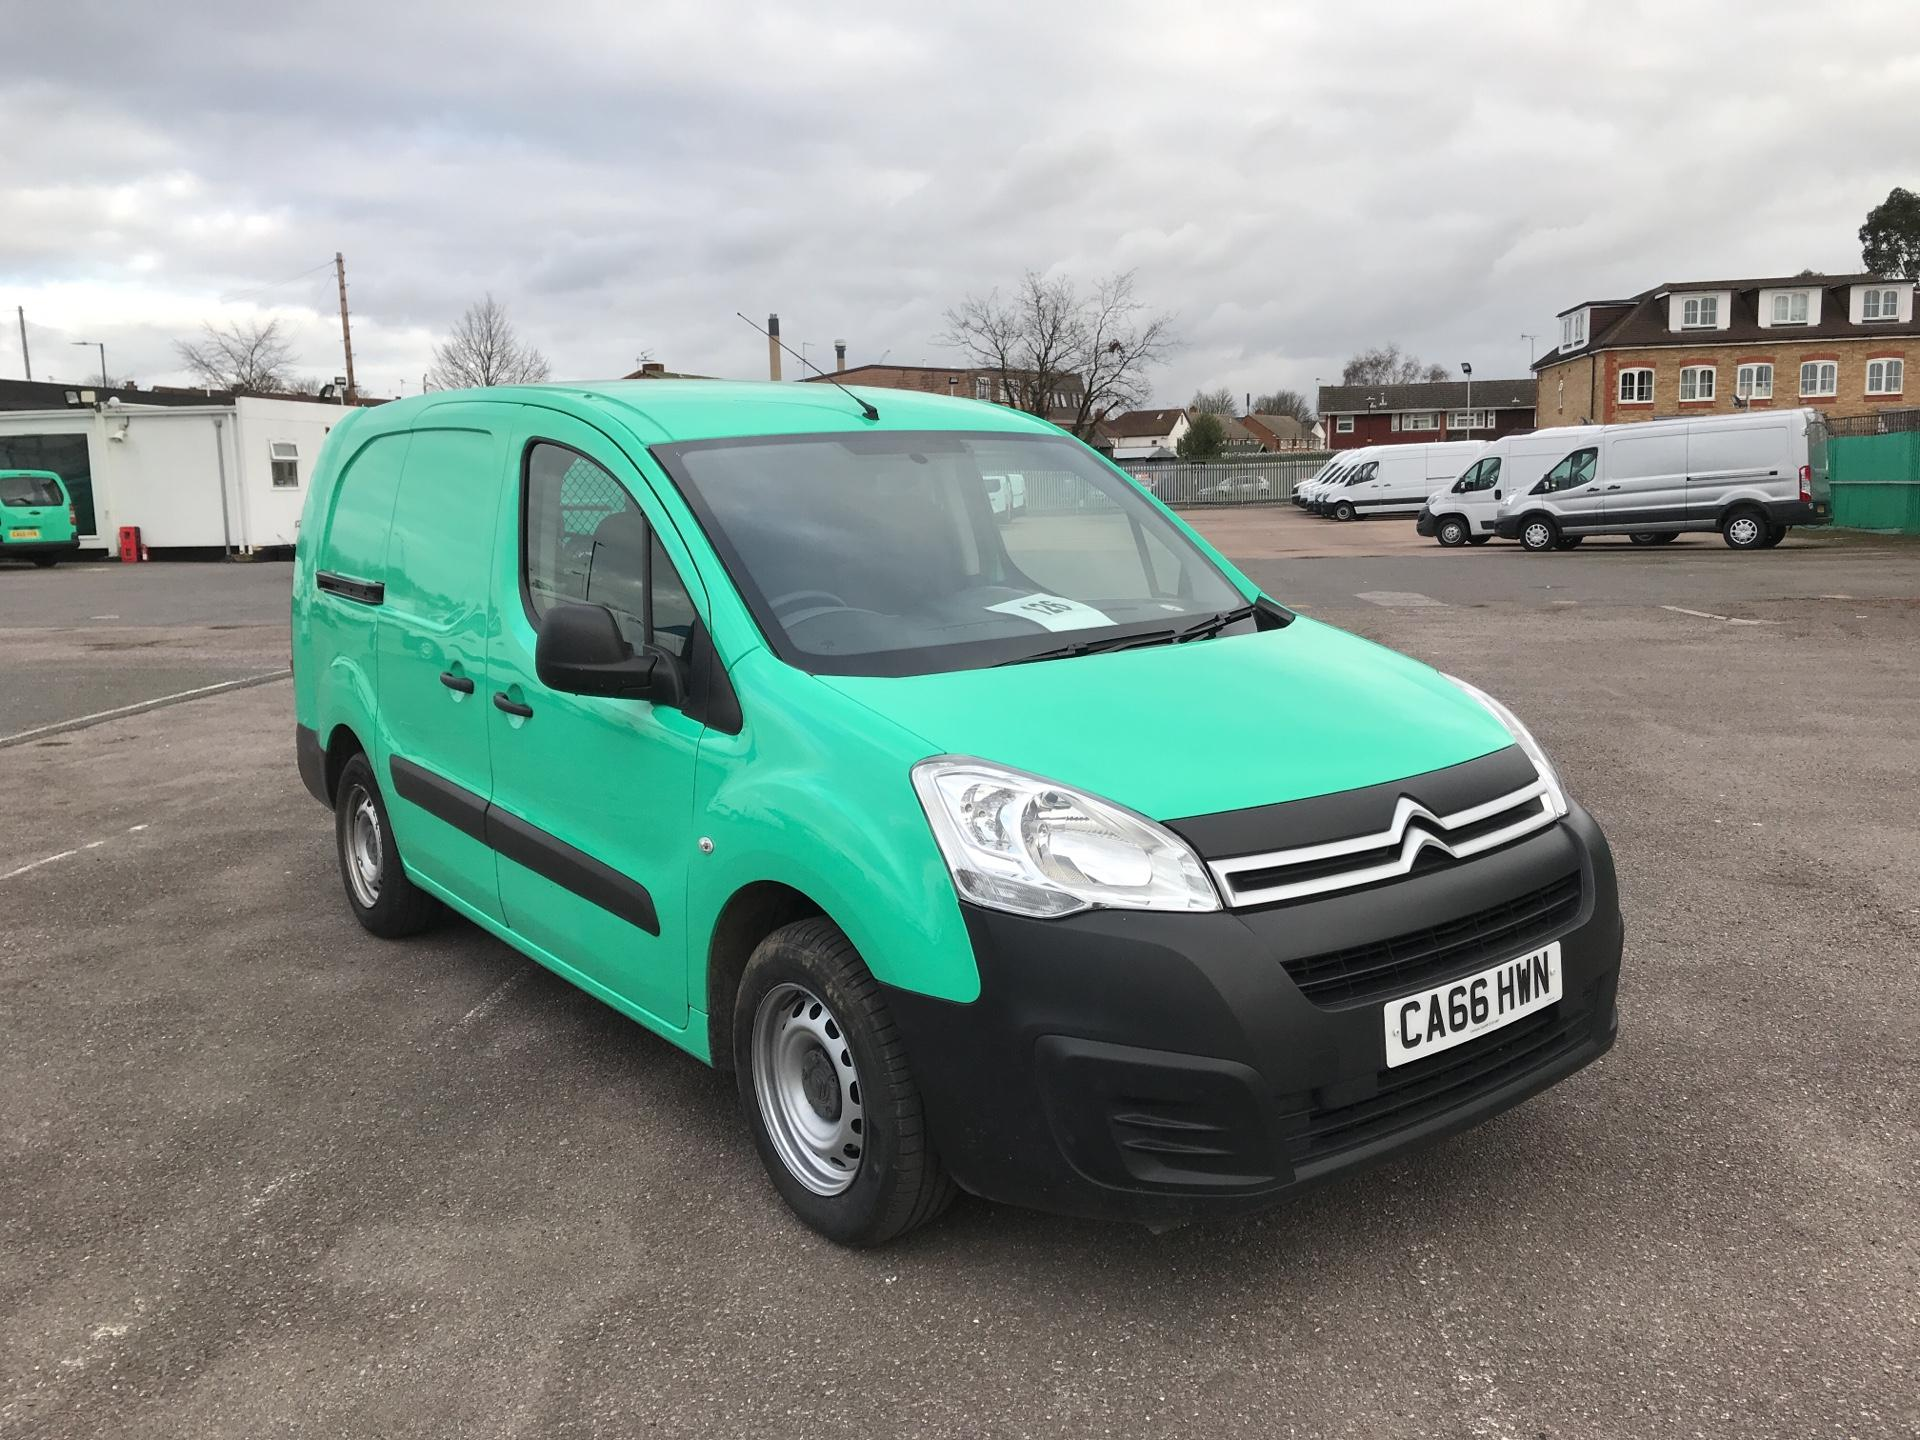 2017 Citroen Berlingo L2 DIESEL 1.6 BLUEHDI 750 LX 100PS EURO 6  (CA66HWN)